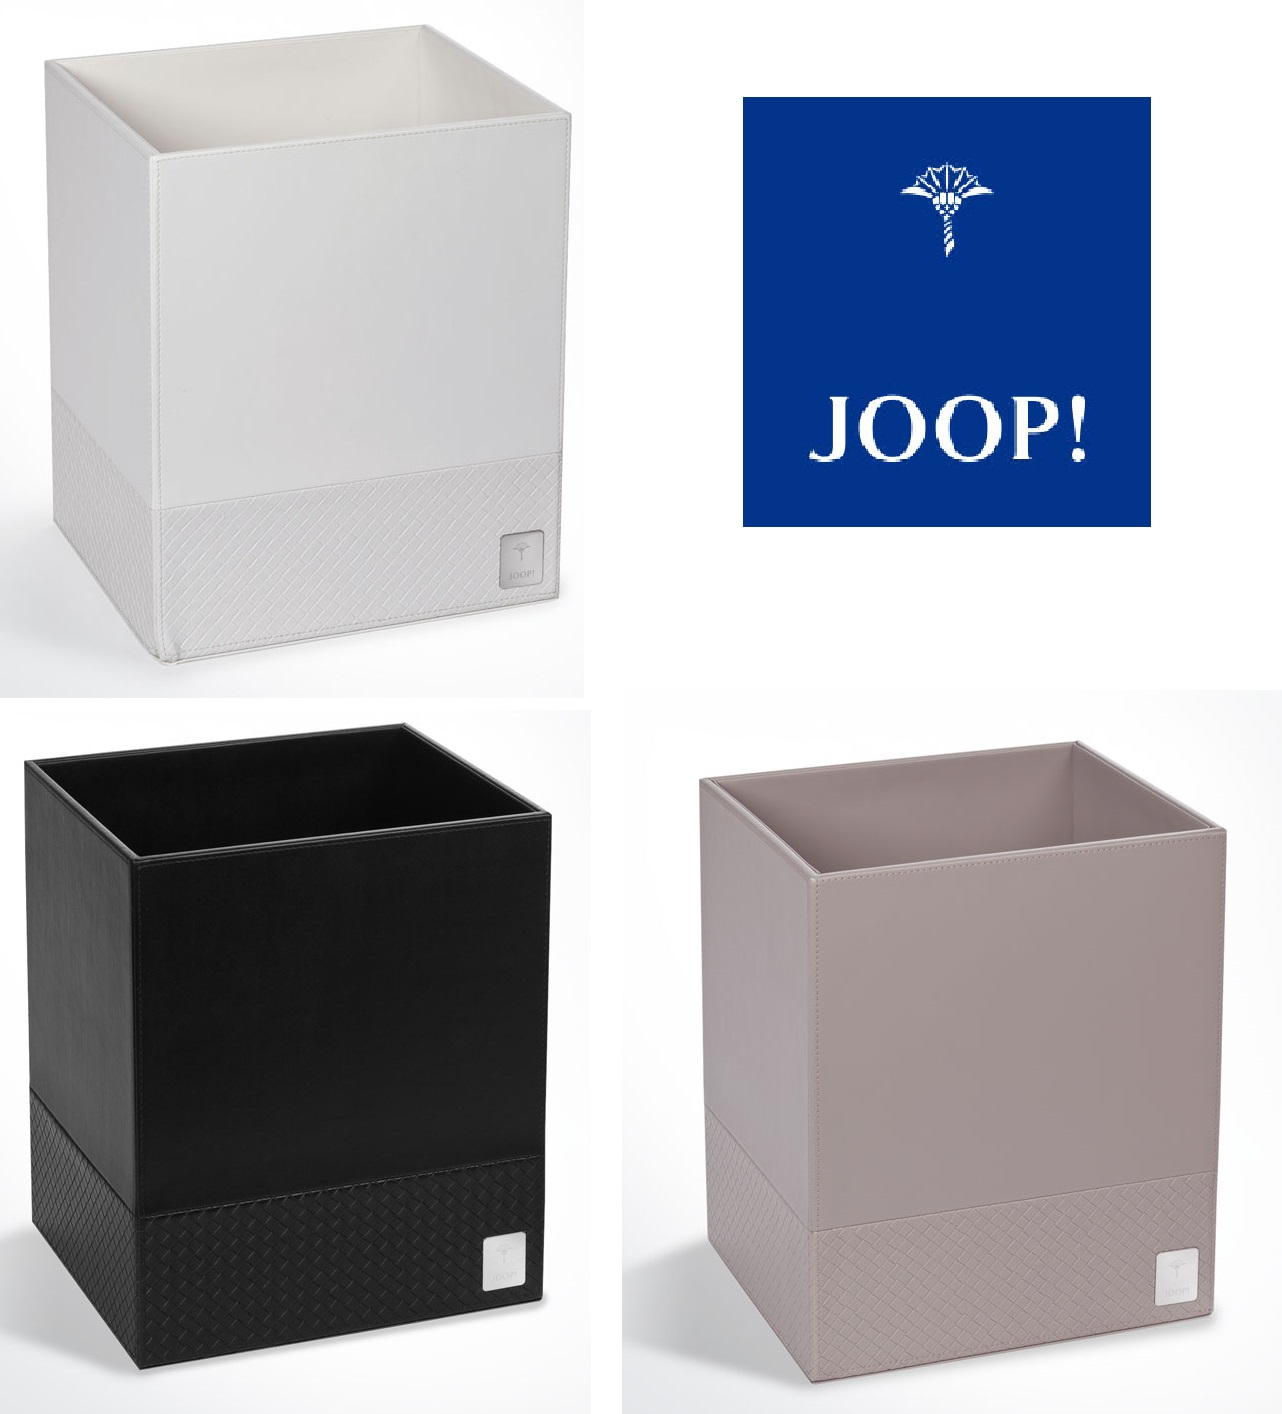 JOOP! Bathline Papierkorb Leder Optik elegantes Design